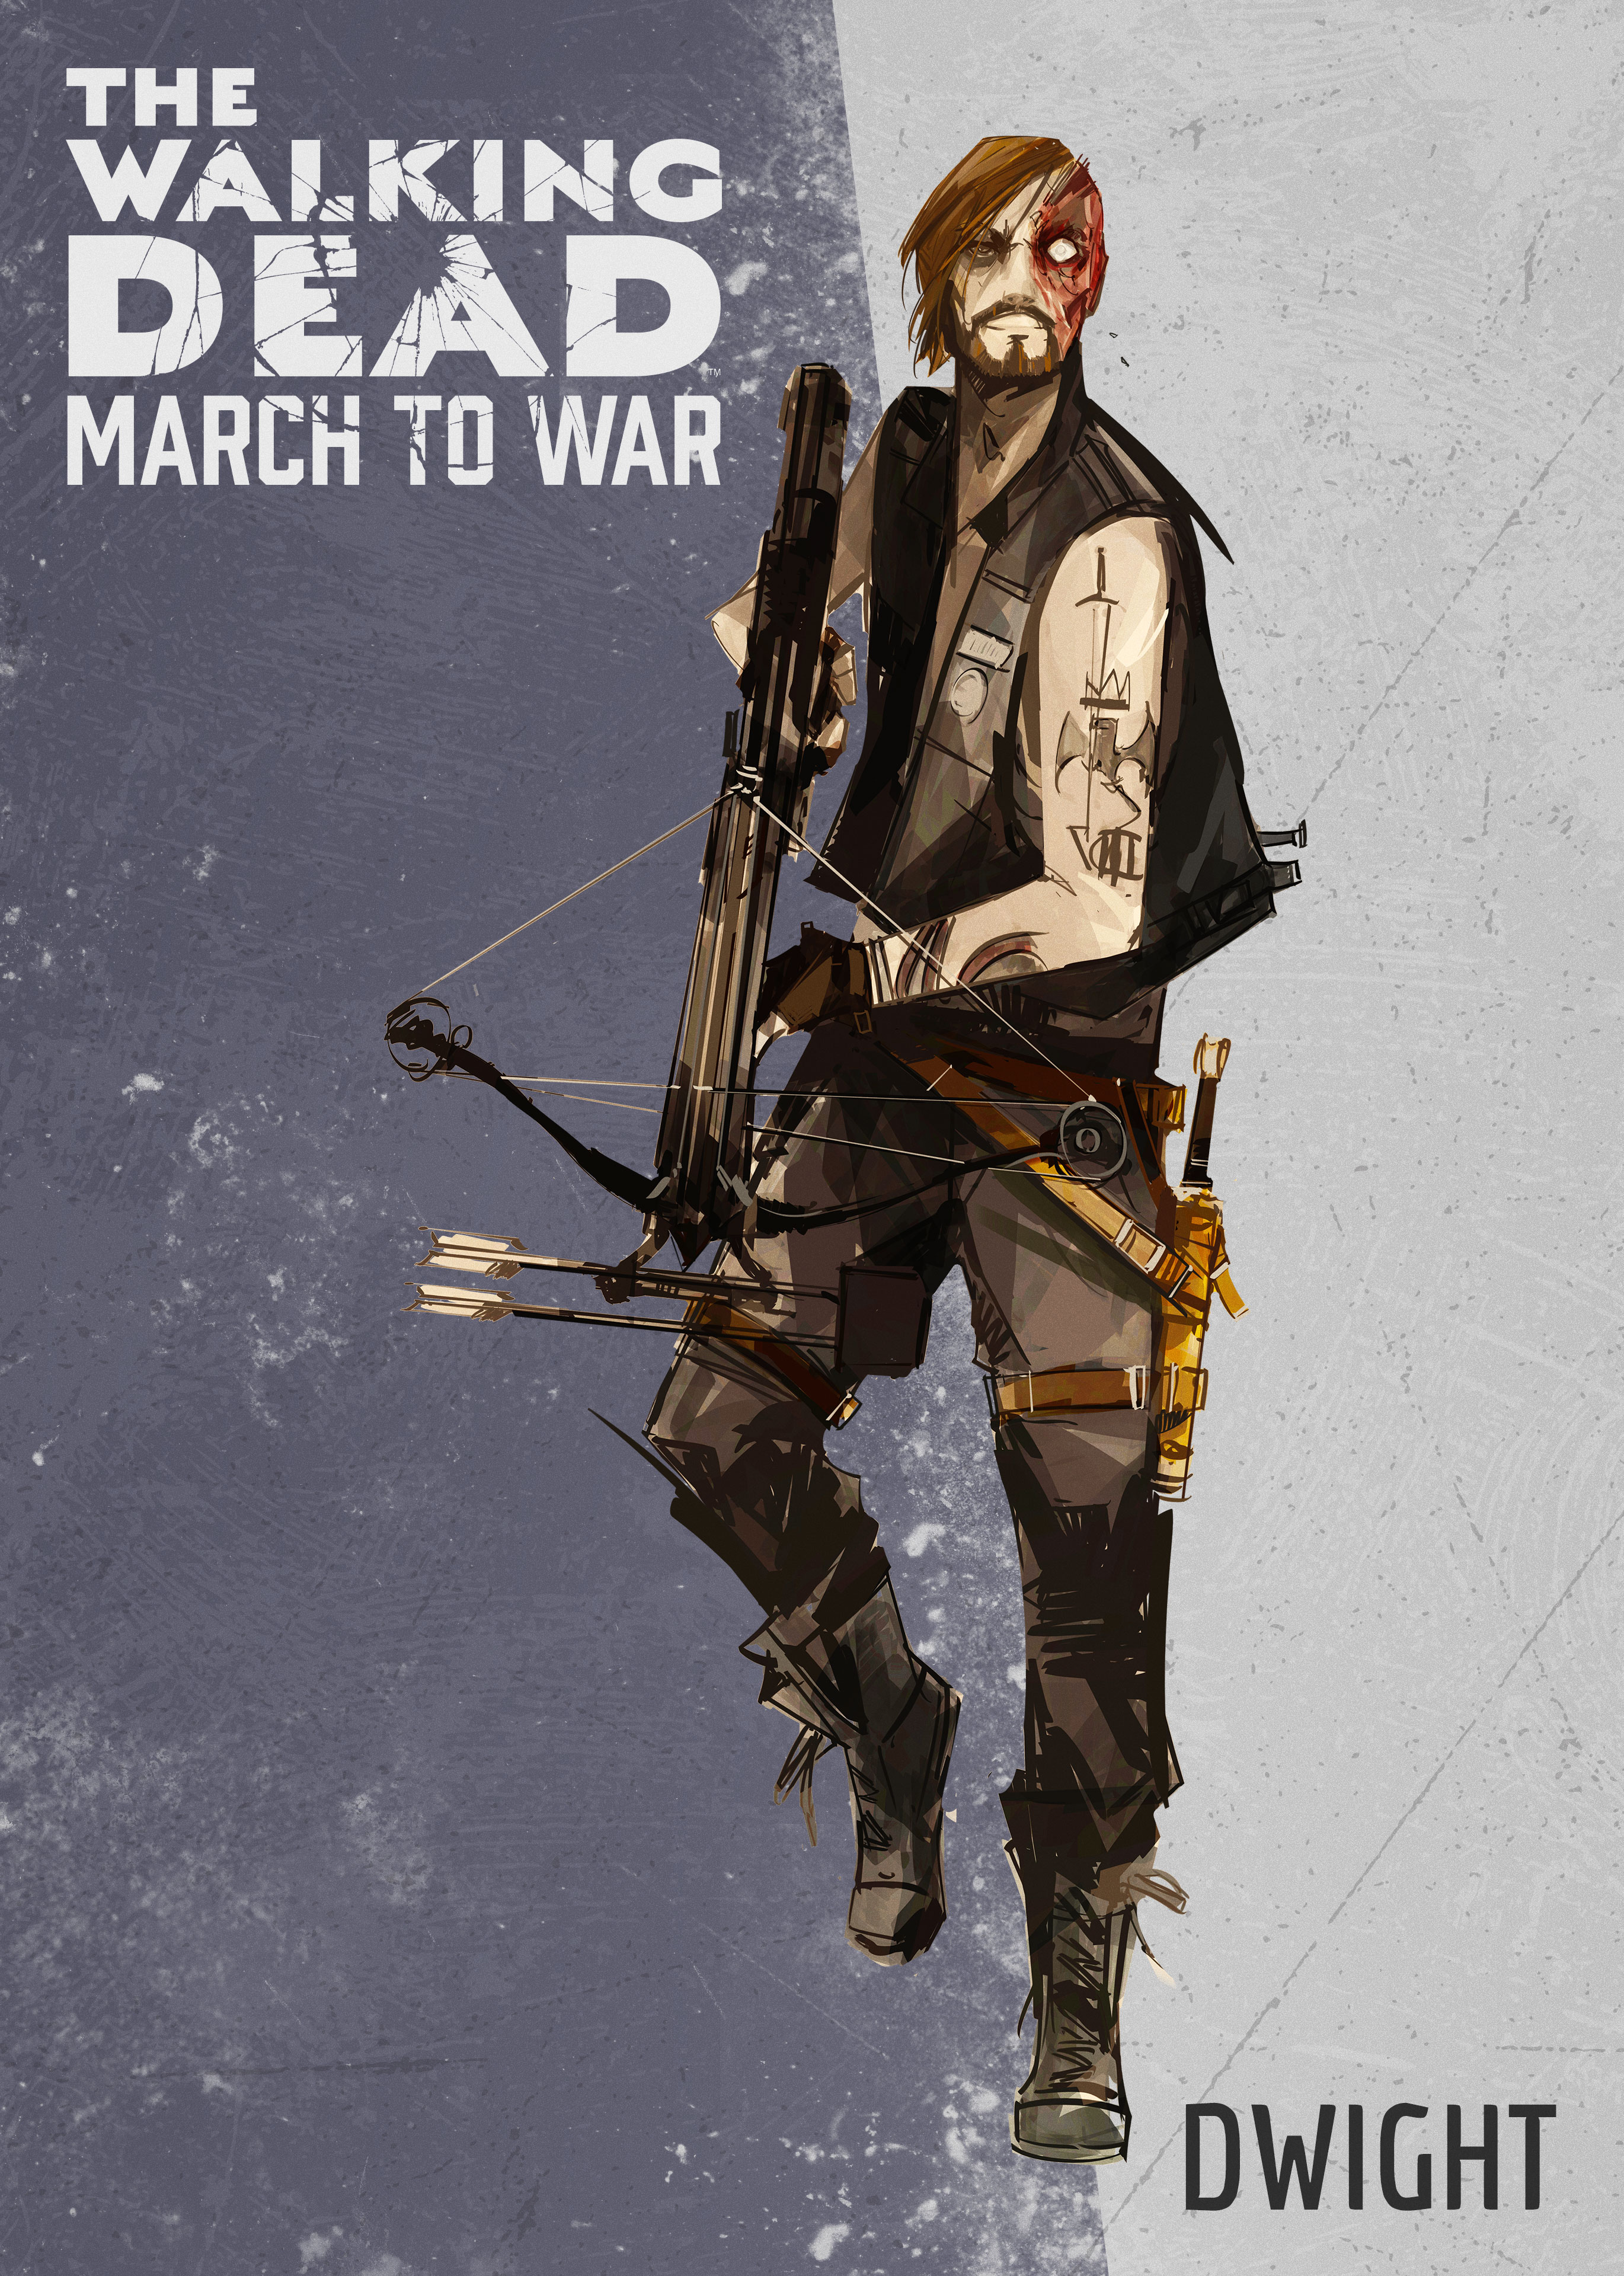 Dwight 2 - The Walking Dead: March To War Game Coming Later This Year